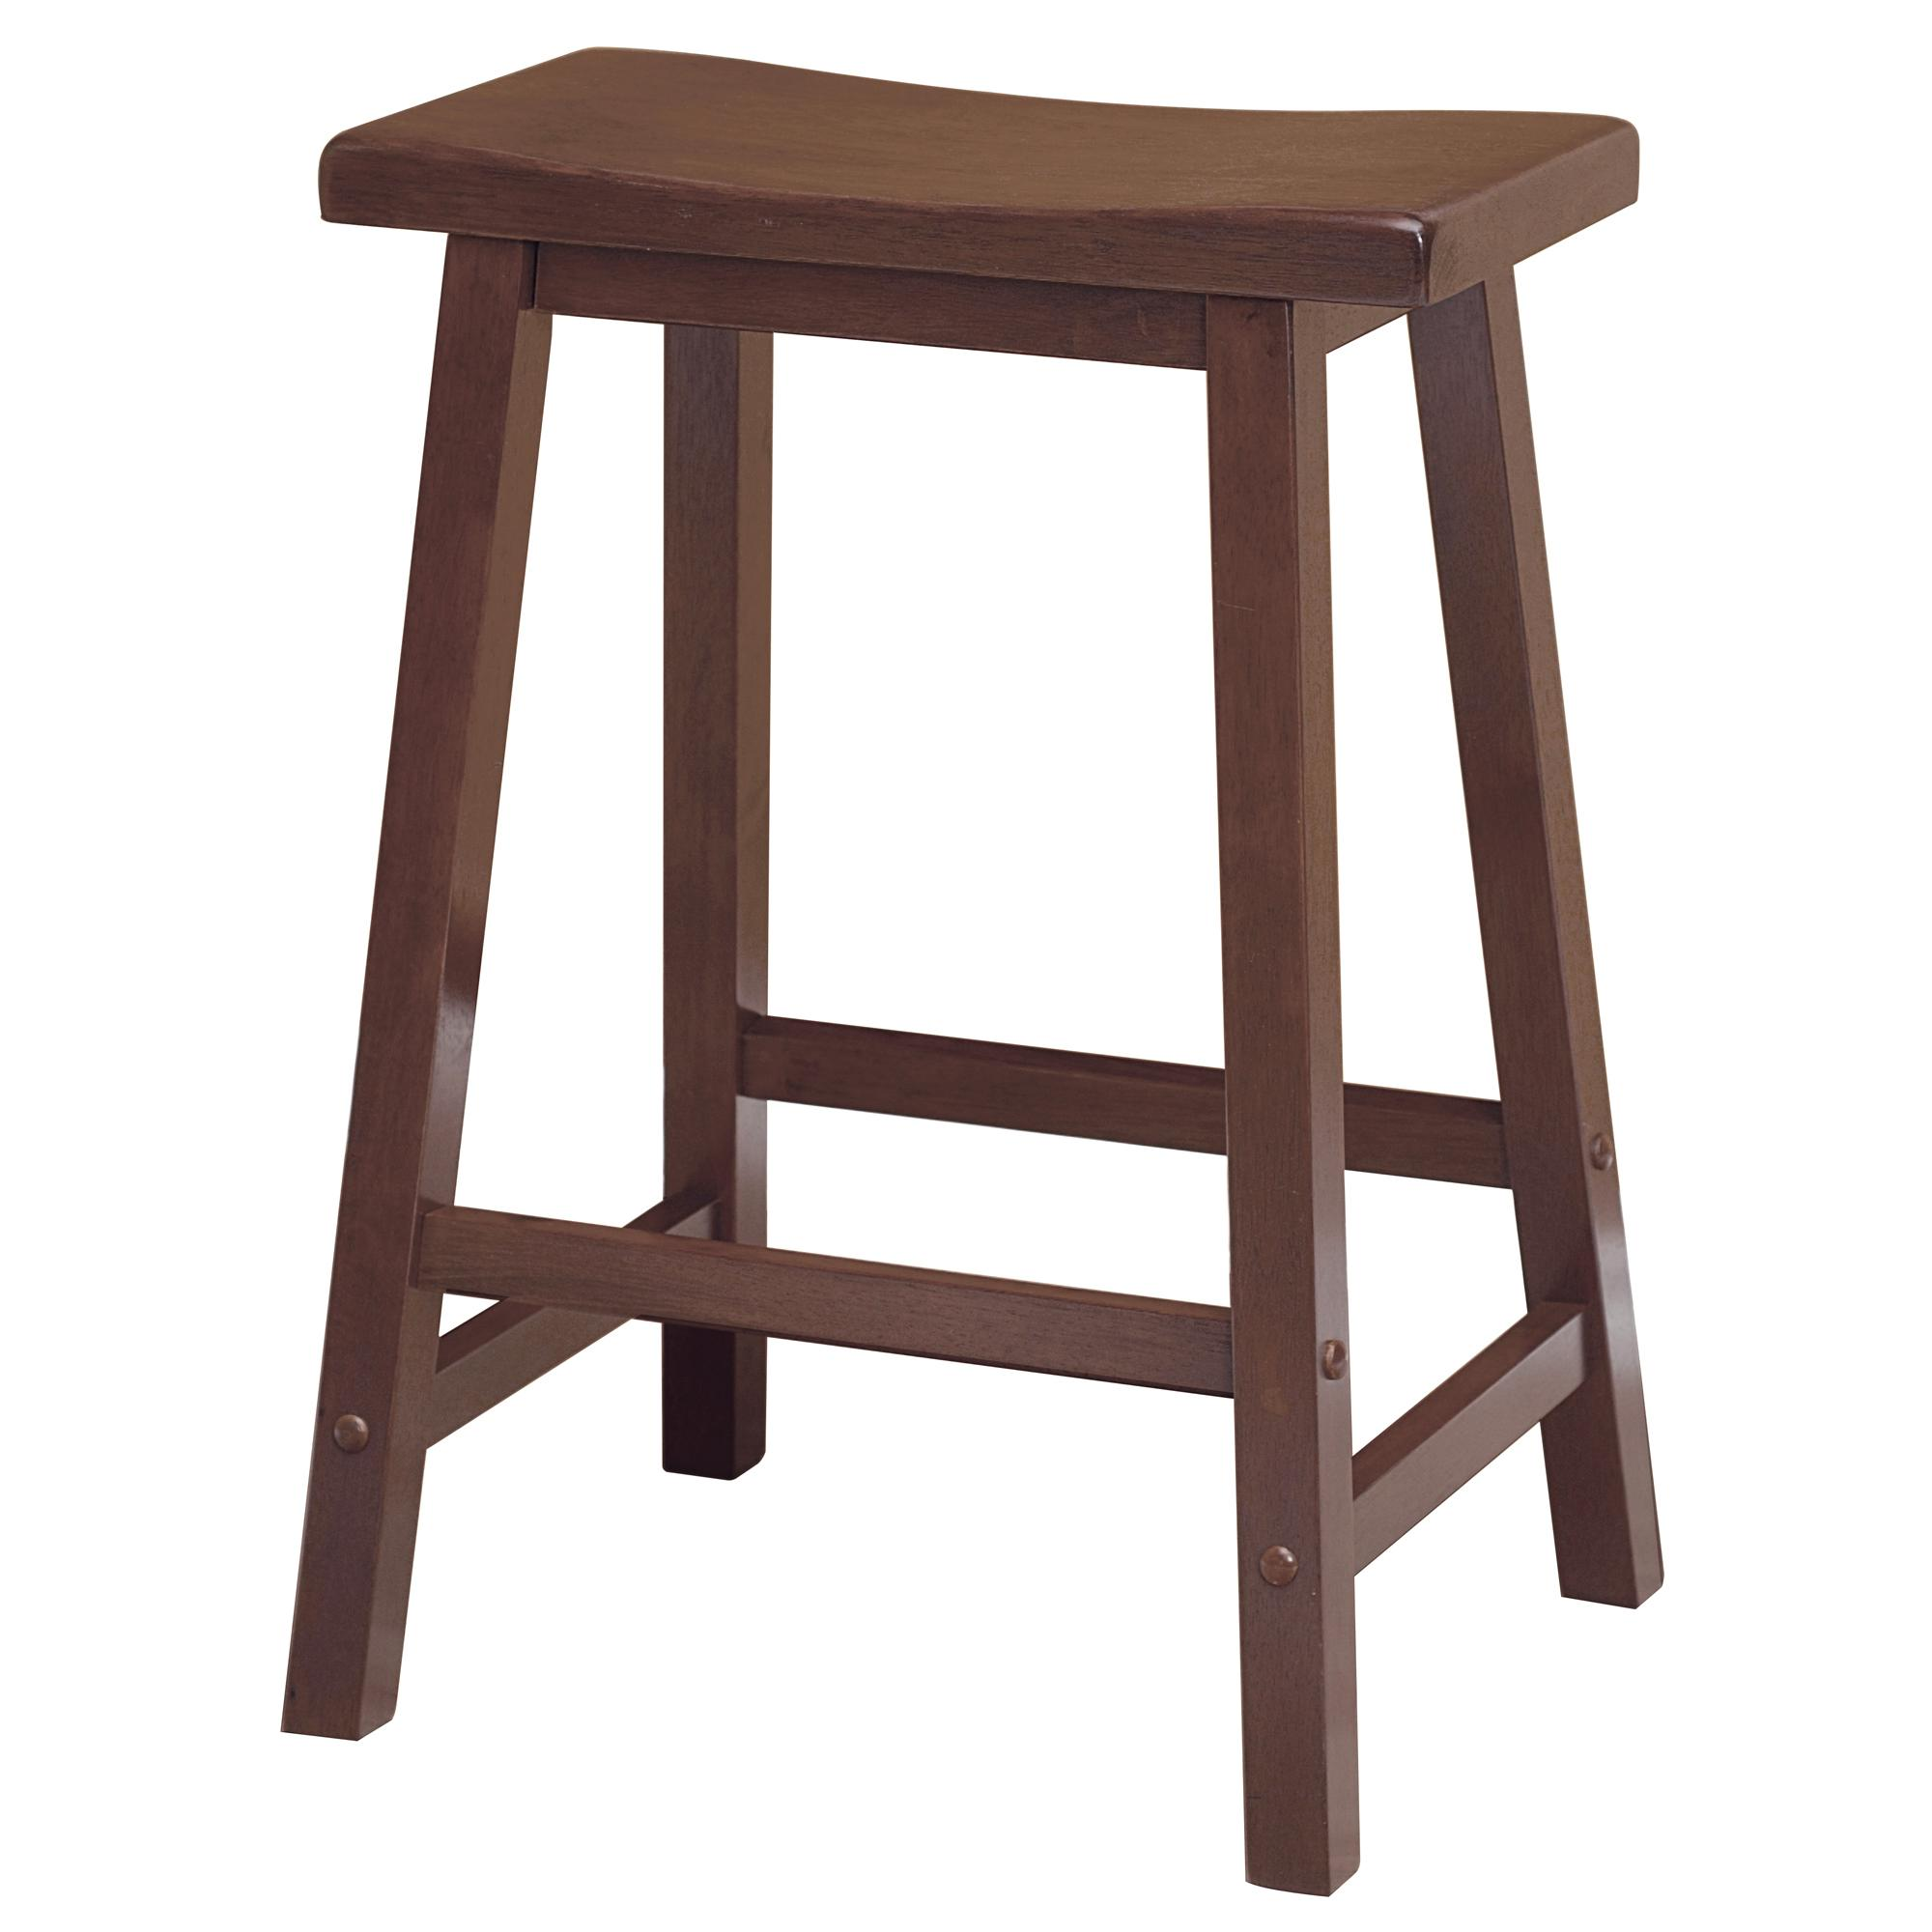 maiden stool to bar furniture by counter order pin discount mcguire made buy designer stools